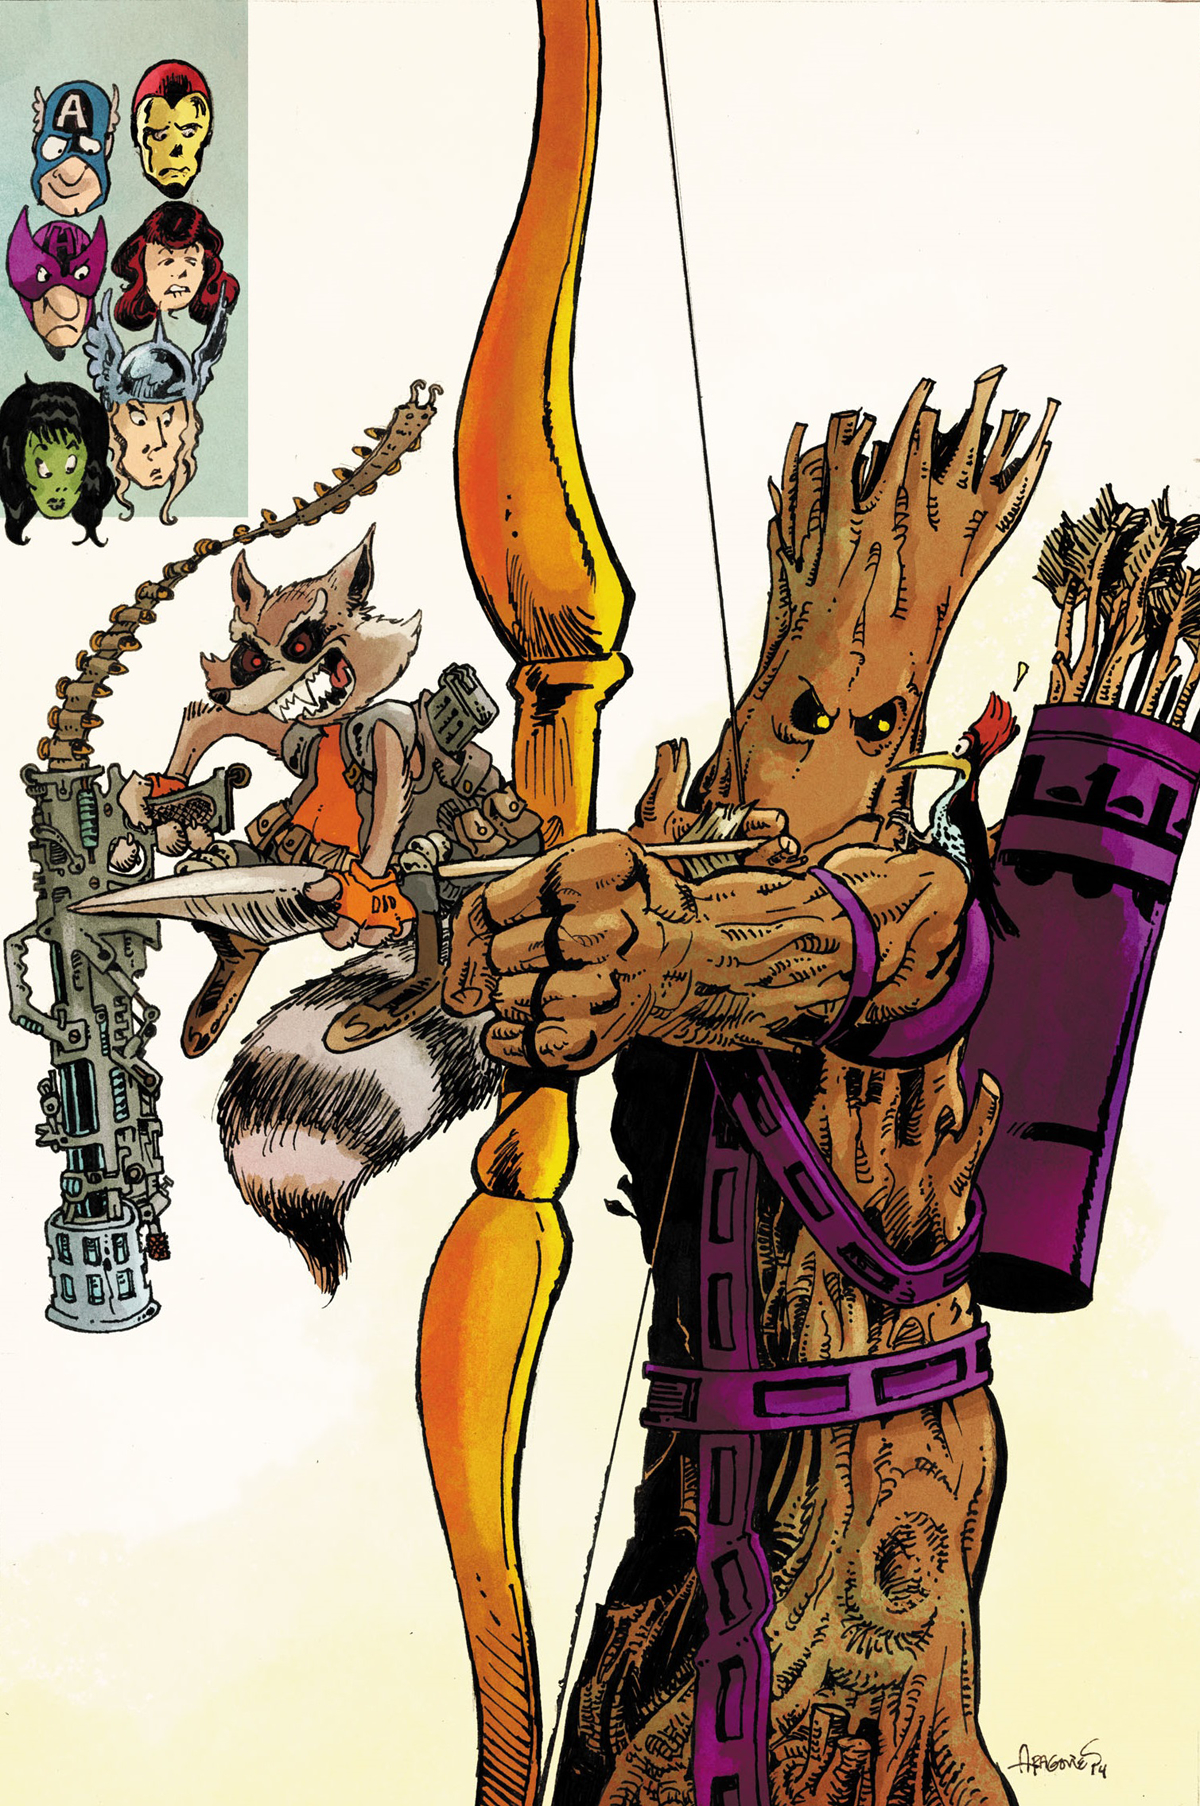 AVENGERS WORLD #15 ROCKET RACCOON AND GROOT VAR AXIS